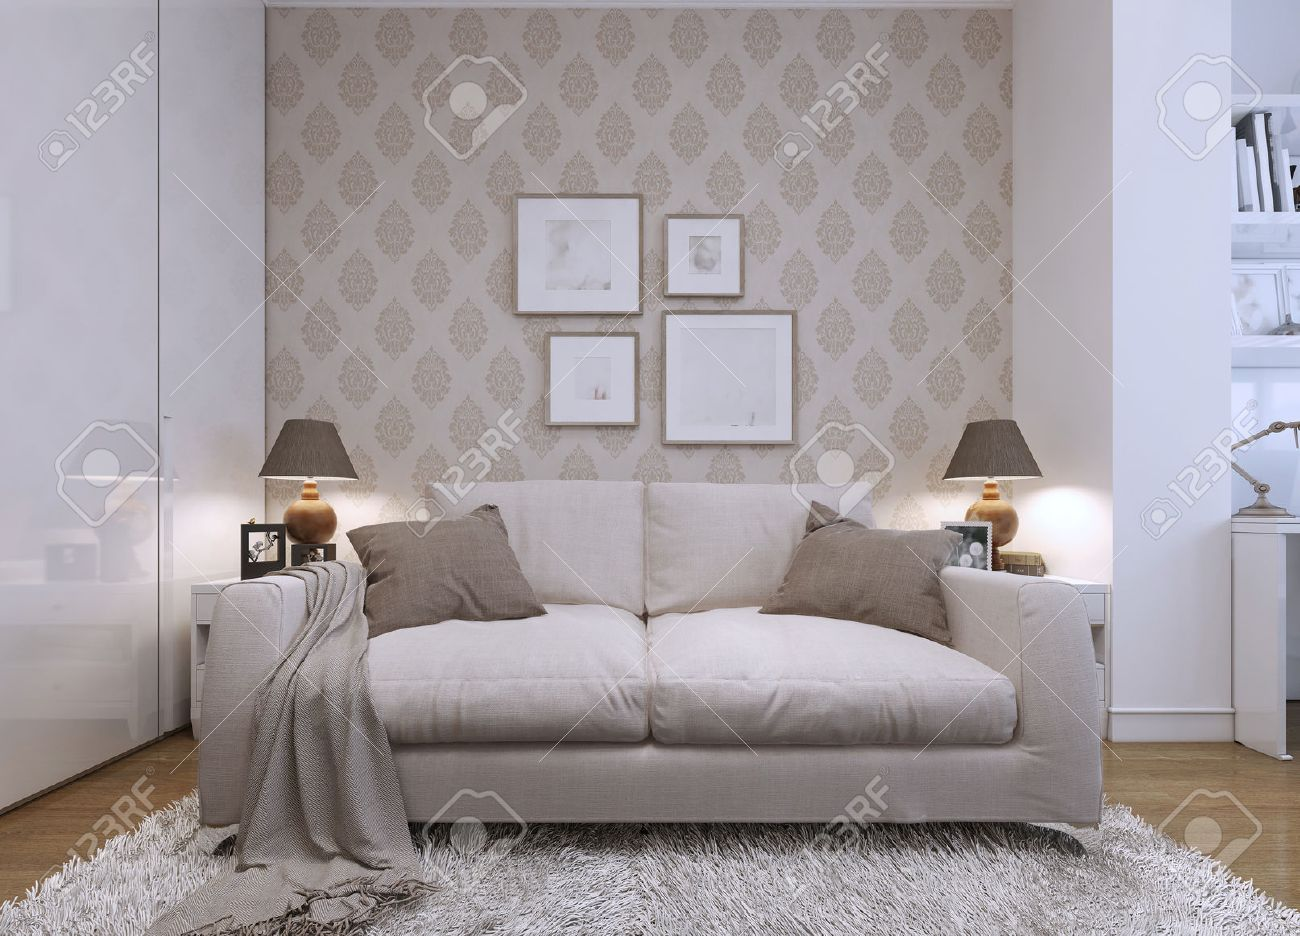 Beige Sofa In The Living Room In A Modern Style Wallpaper On - Modern style living room furniture